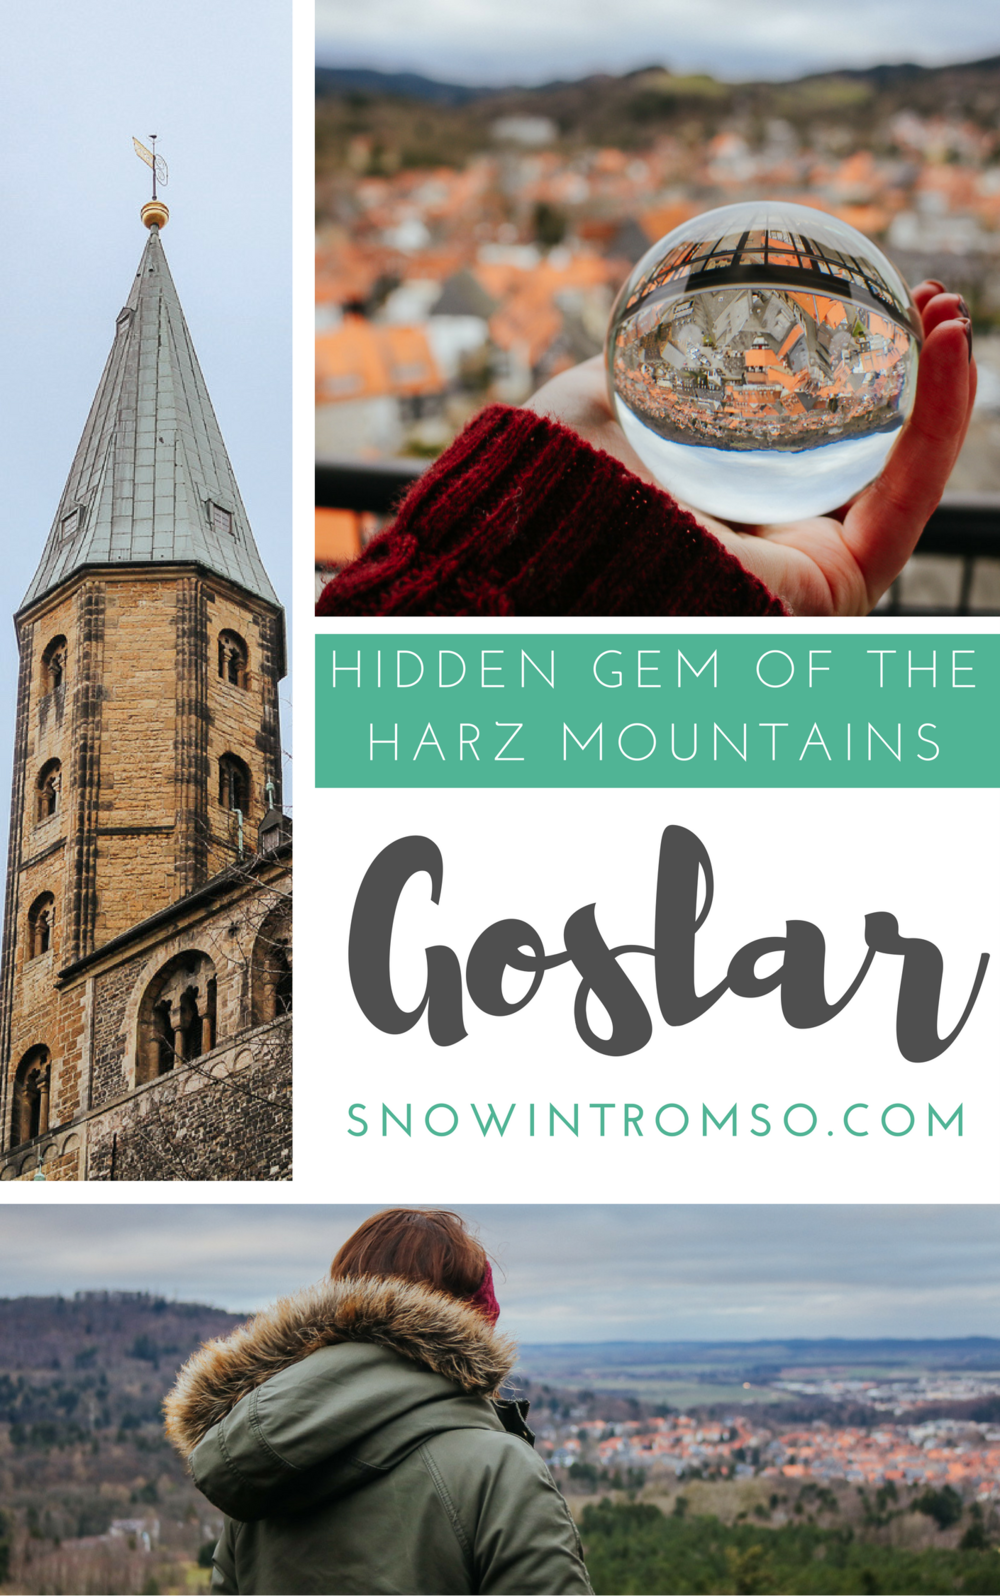 Headed to the Harz Mountains of Germany? Here's what you can do and see in Goslar!